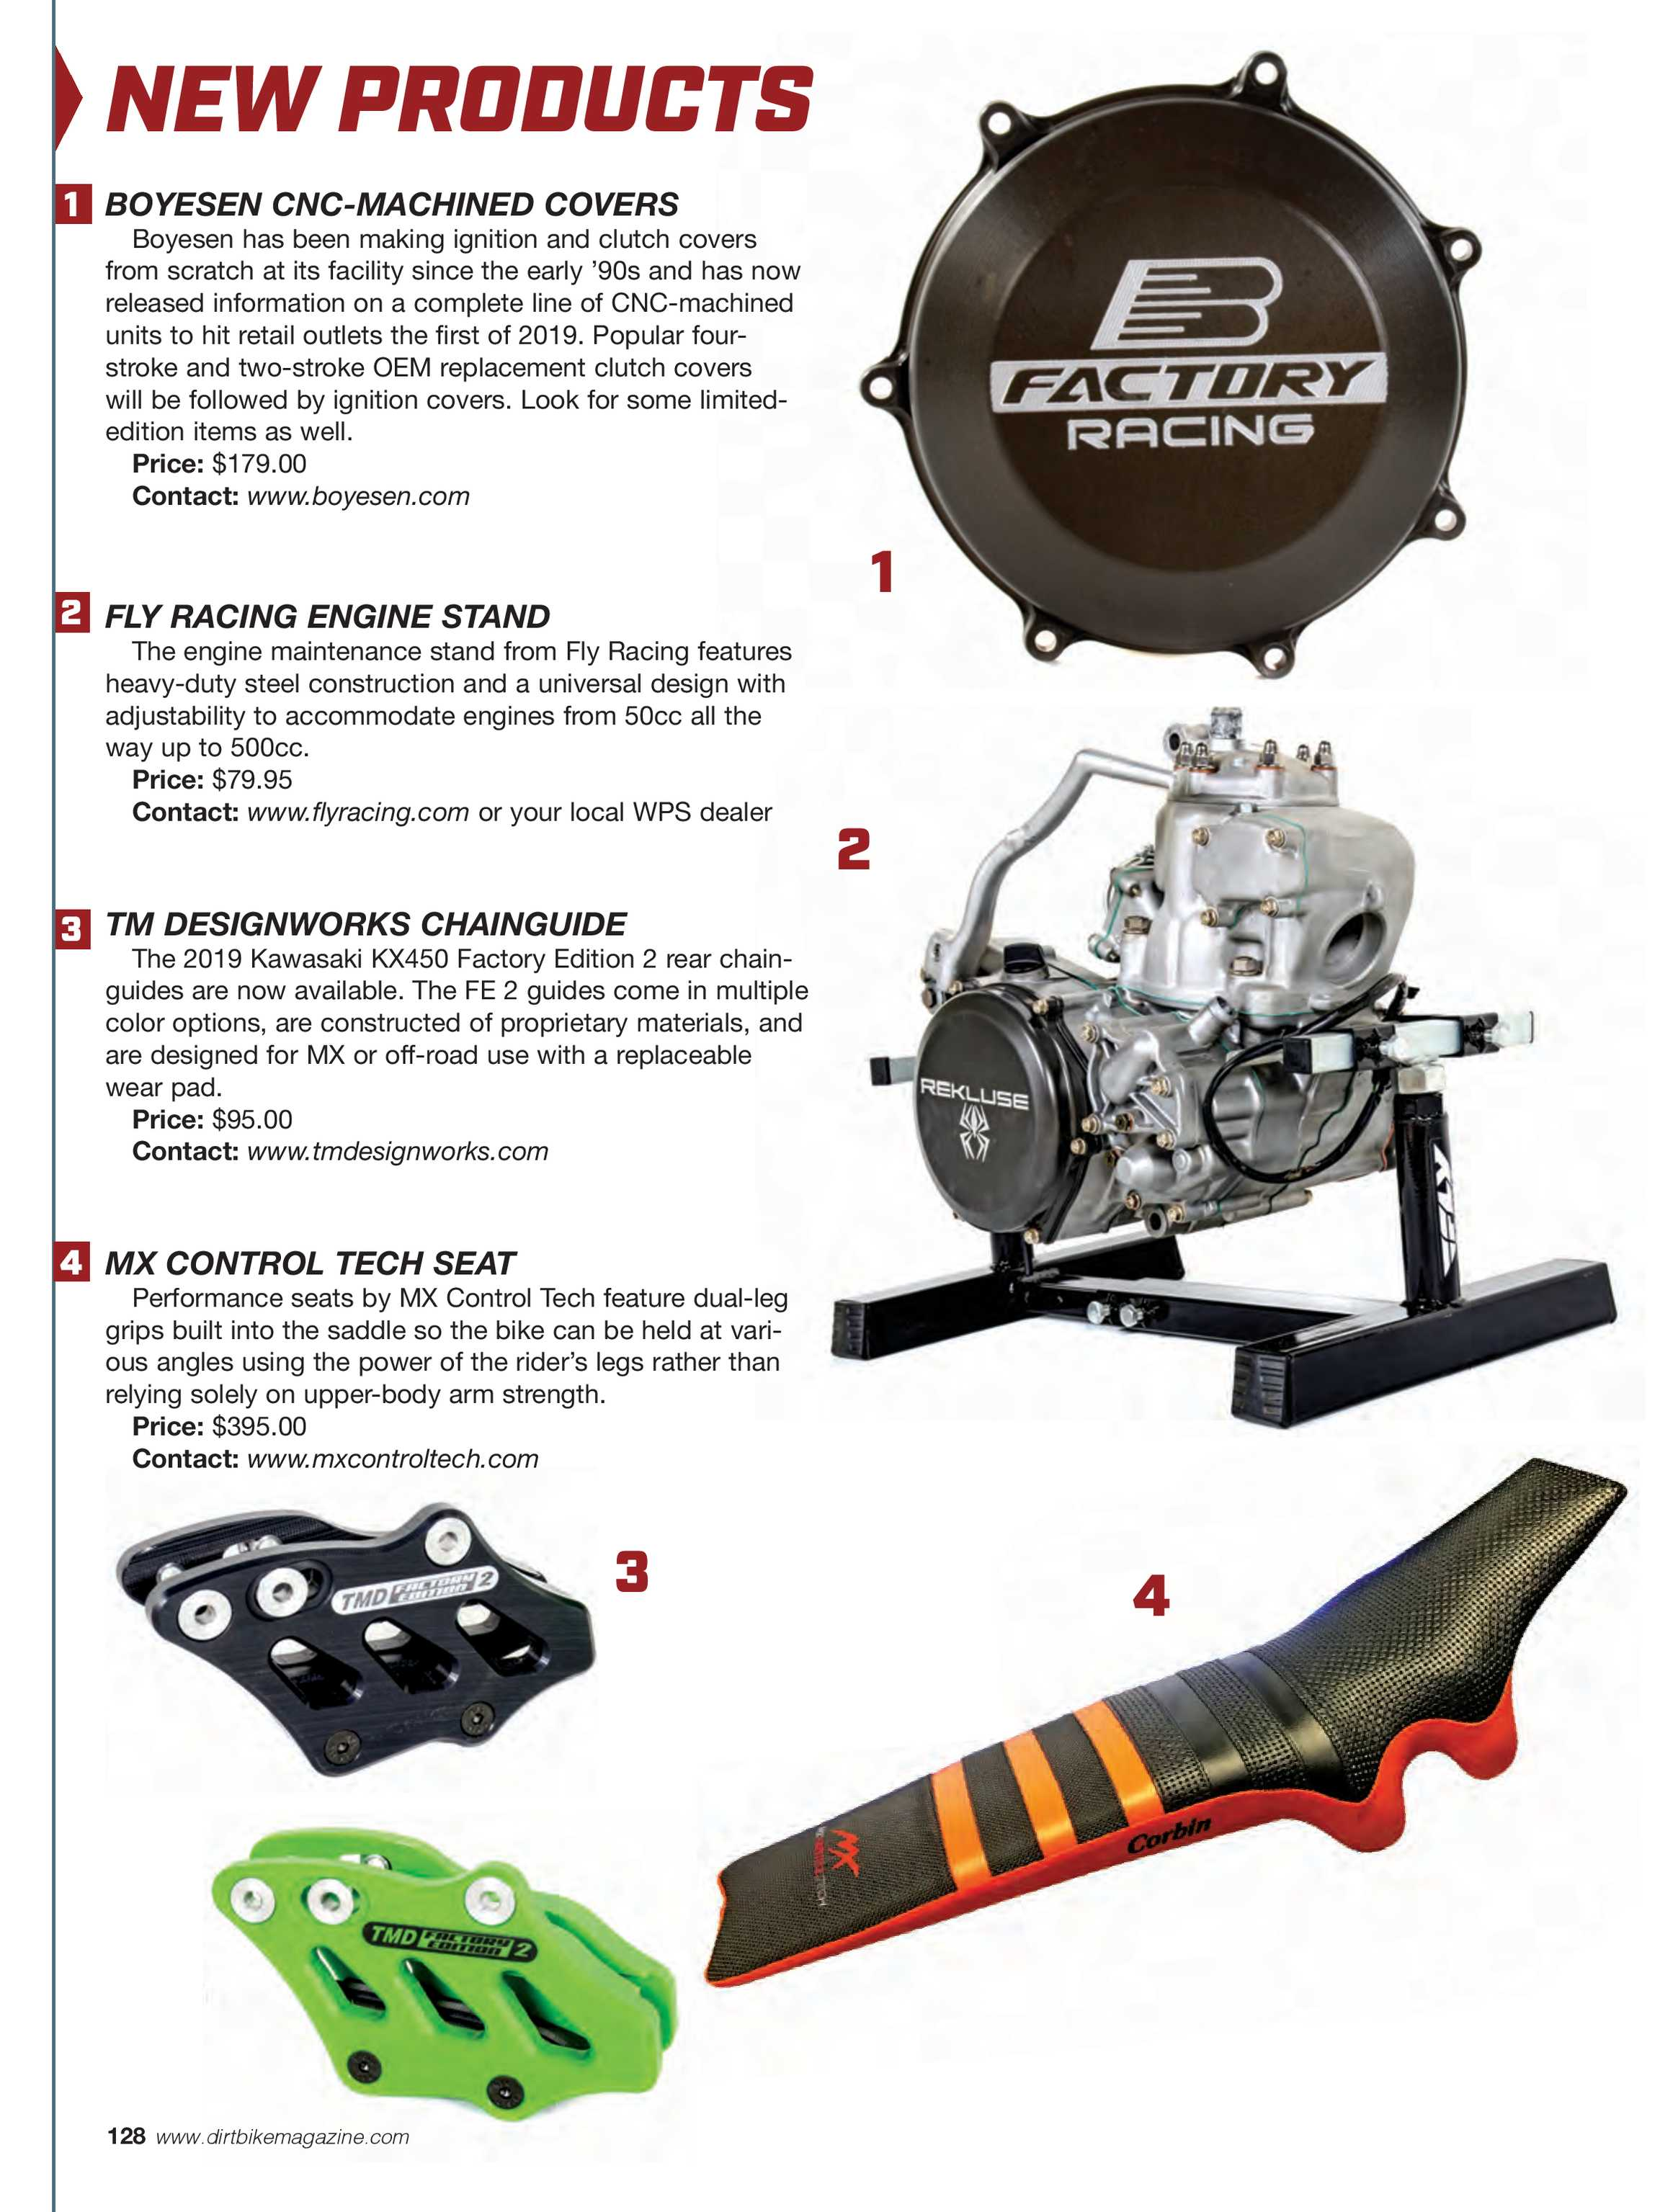 Dirt Bike Magazine - March 2019 - page 128